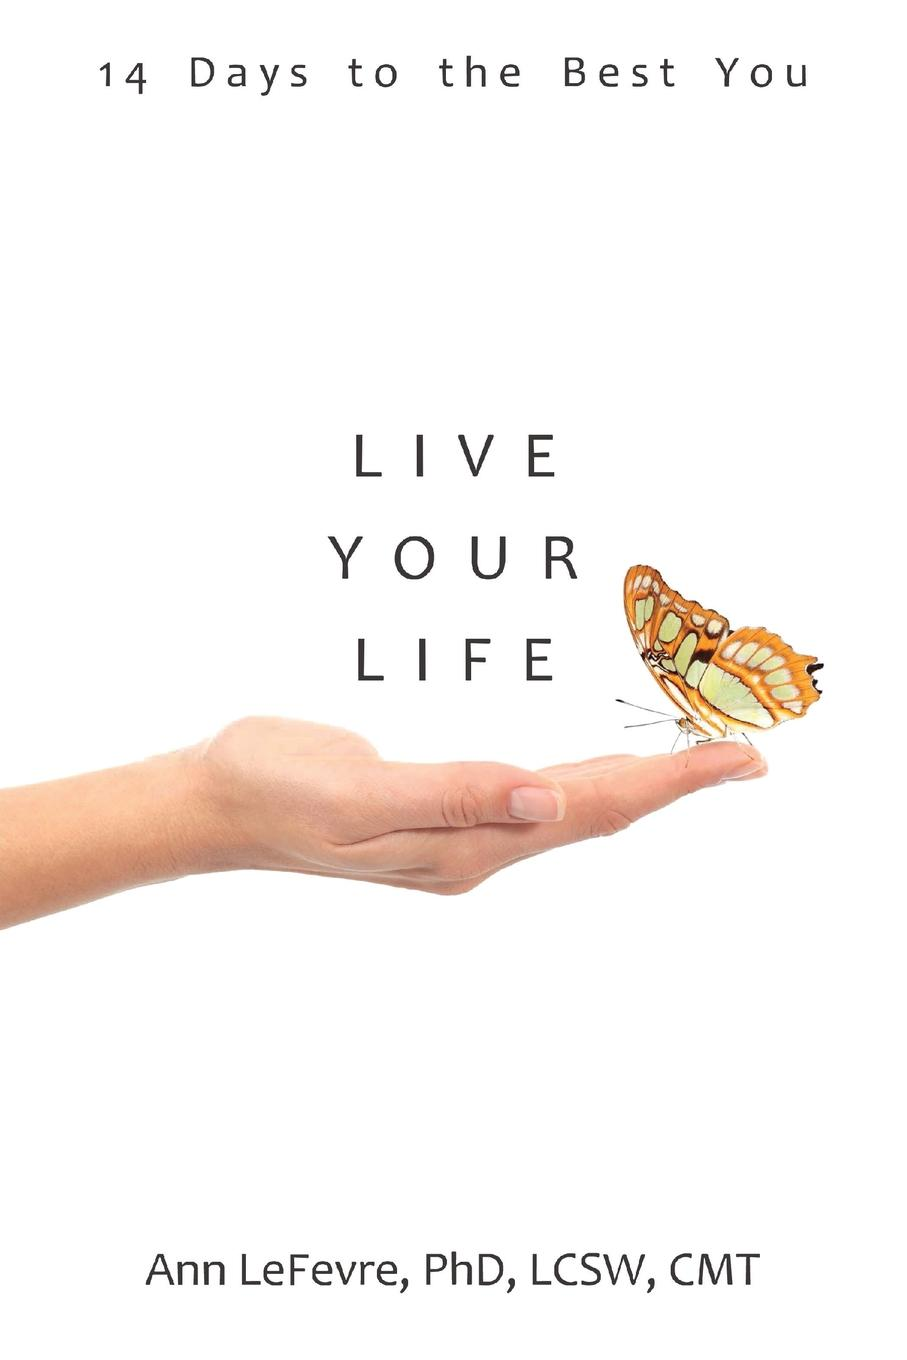 Ann LeFevre Live Your Life. 14 Days to the Best You dave thompson likelife easiest way tolive effectively